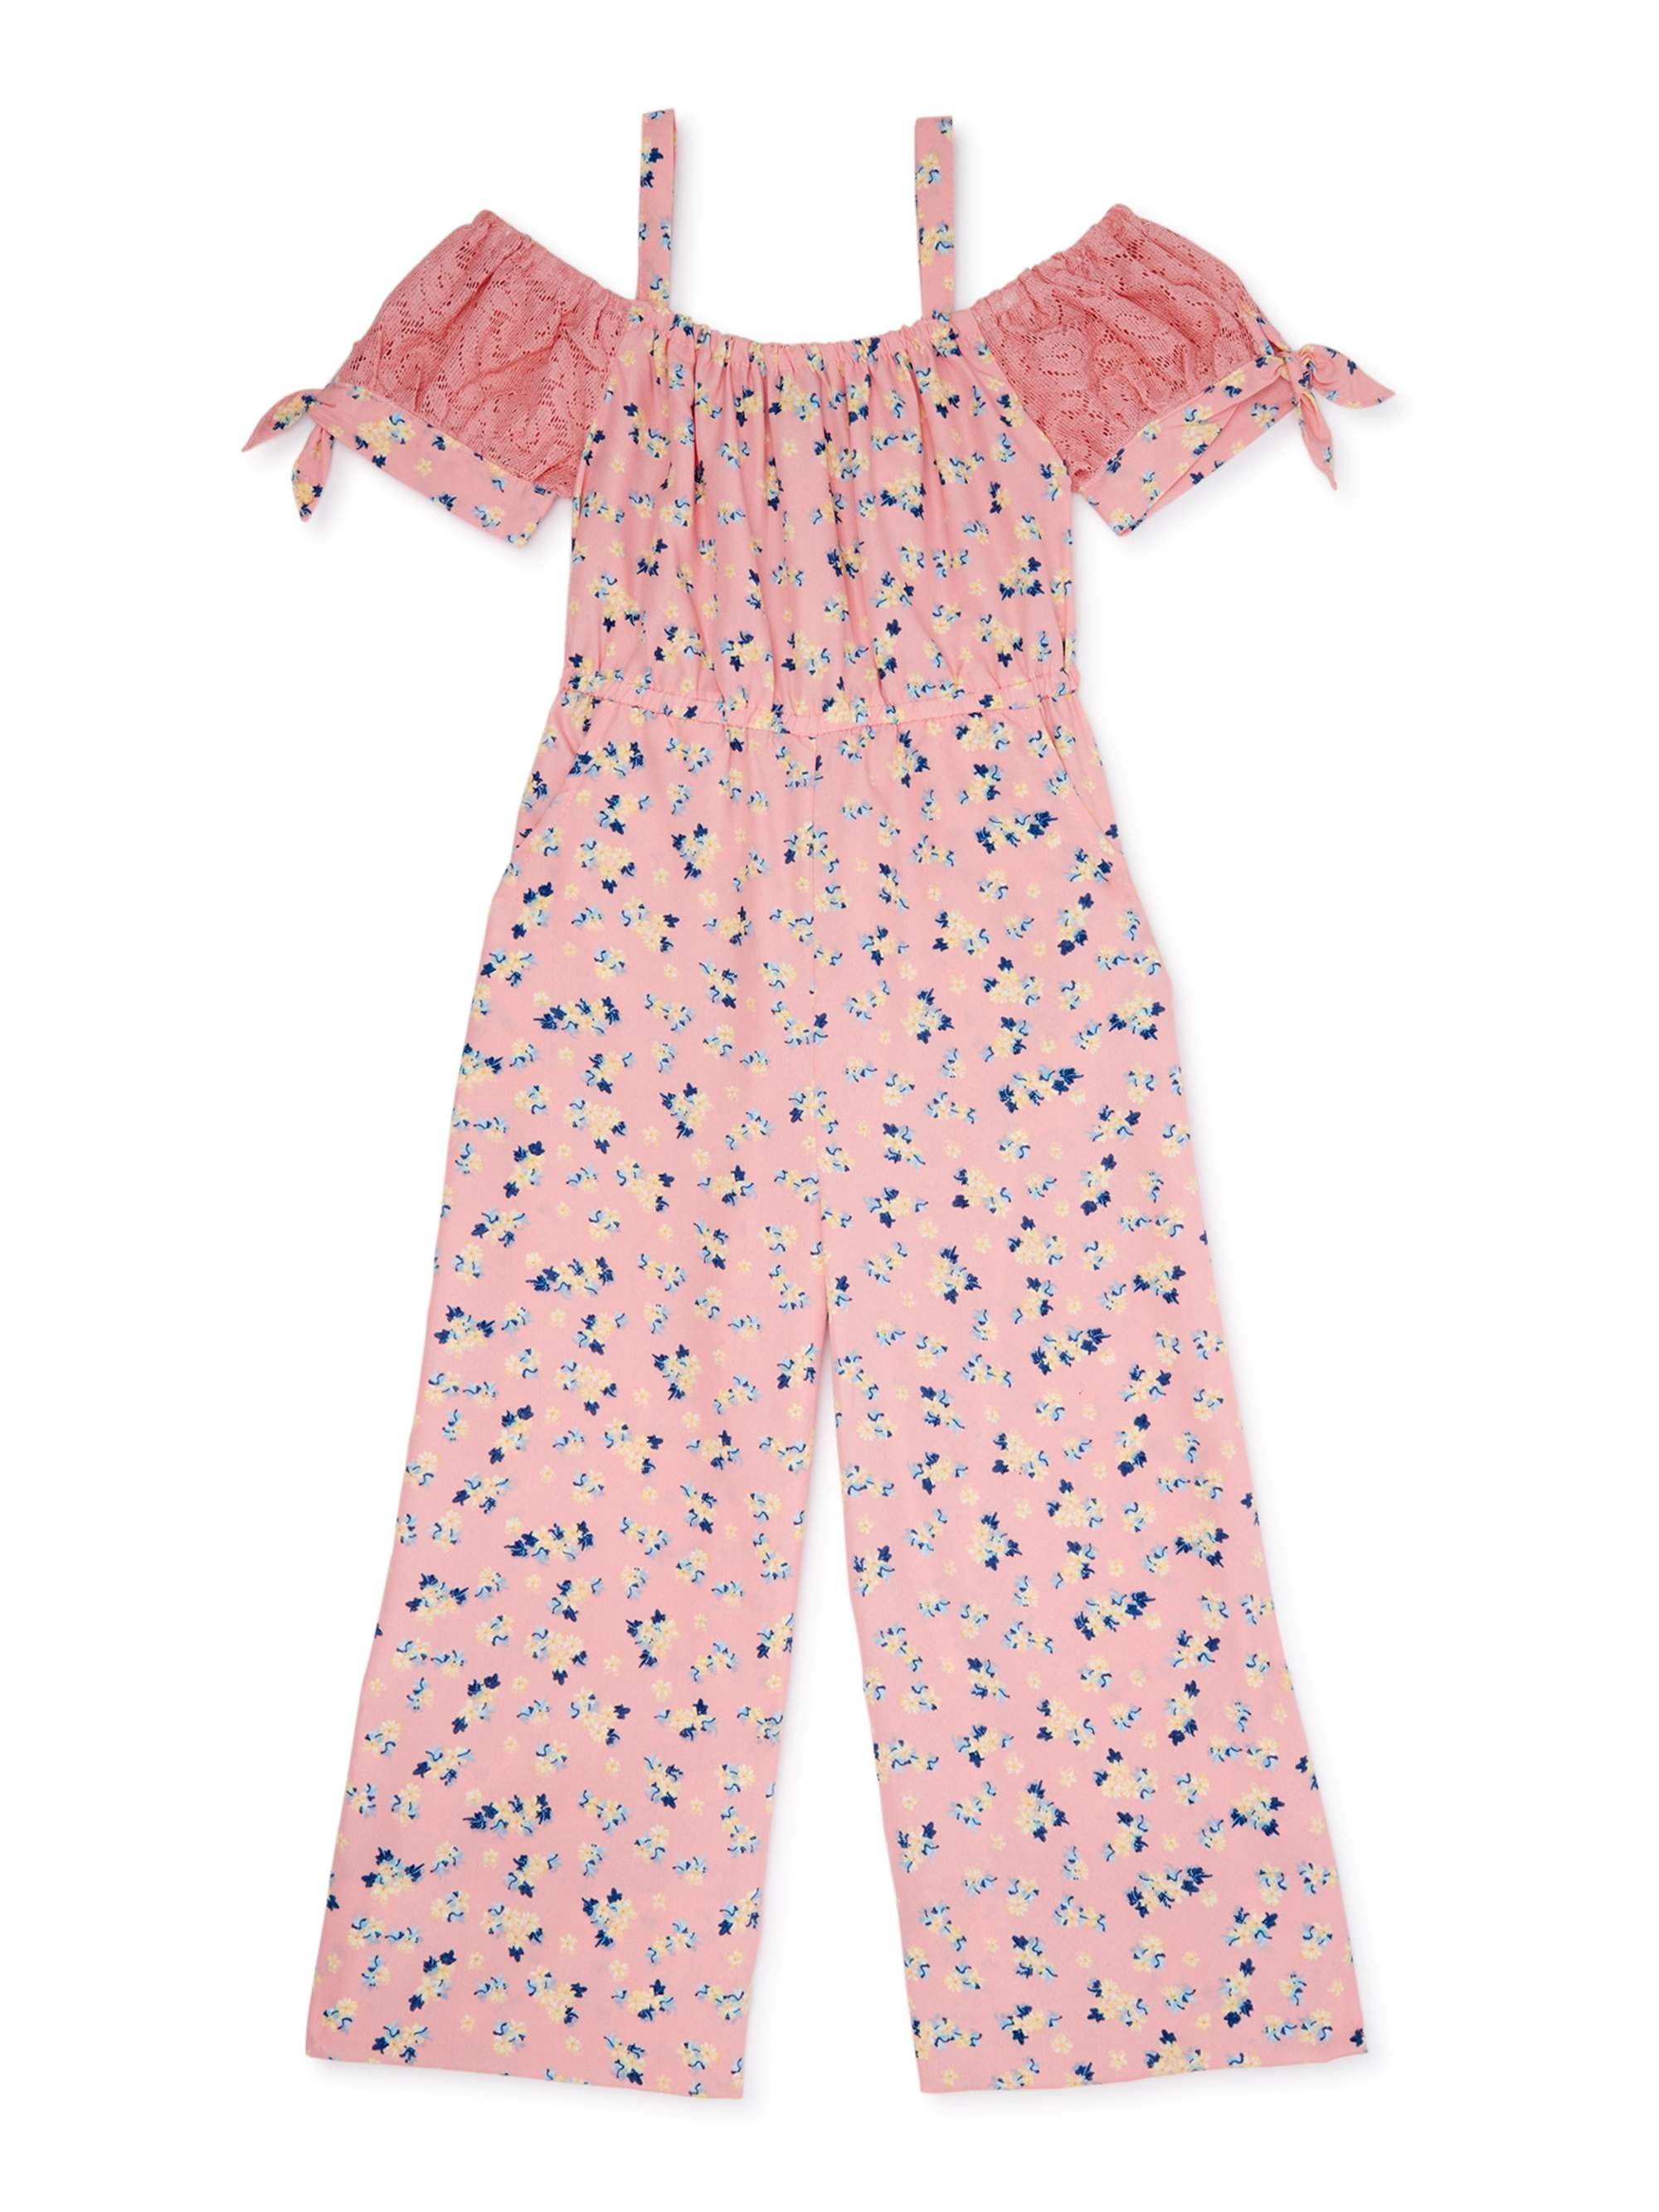 Im Up to No Good Baby Rompers One Piece Jumpsuits Summer Outfits Clothes Pink